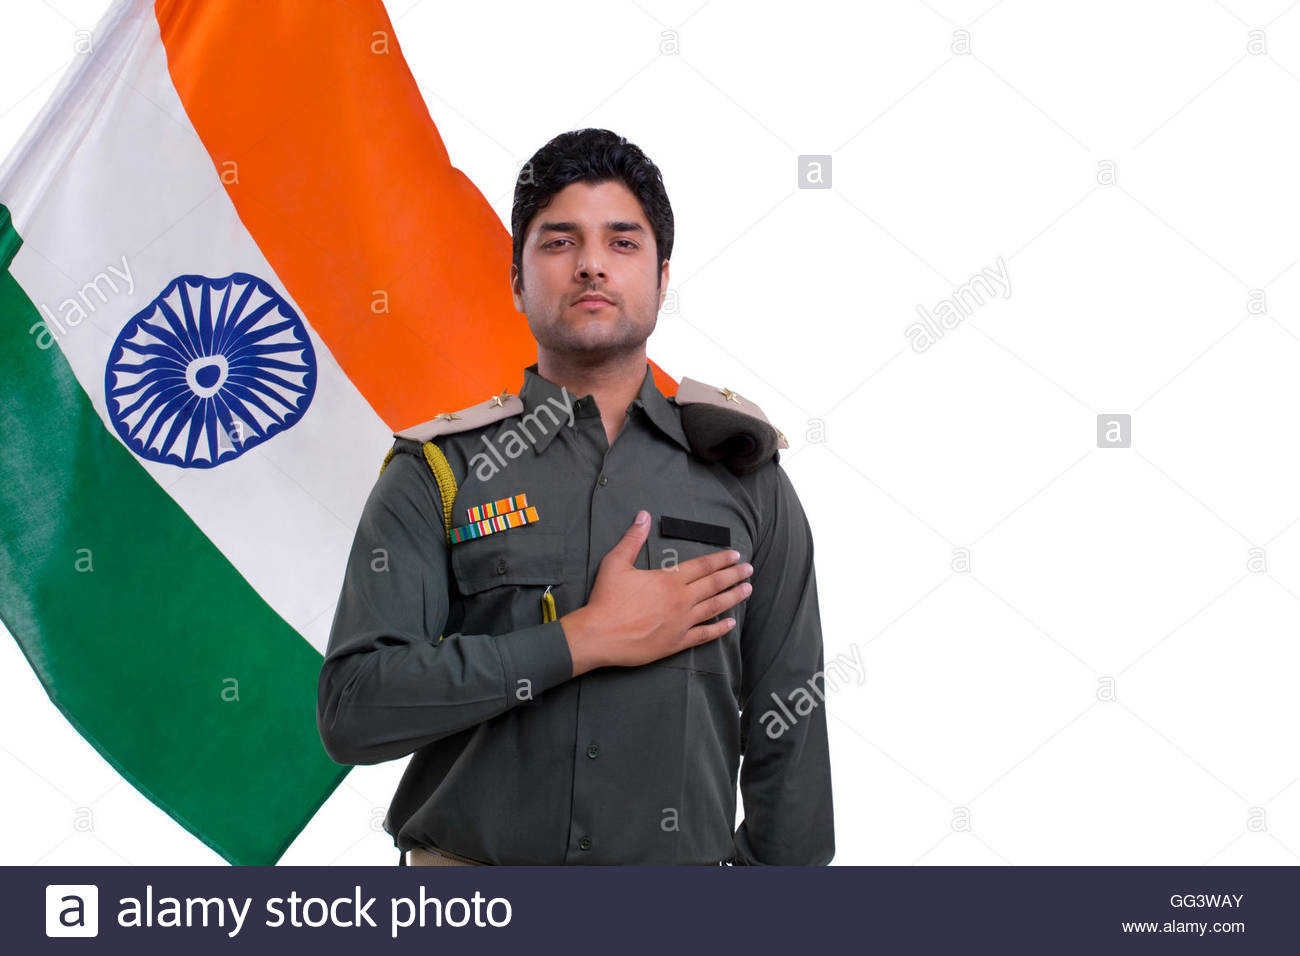 security guard taking a pledge with Indian flag in the background 1300x956